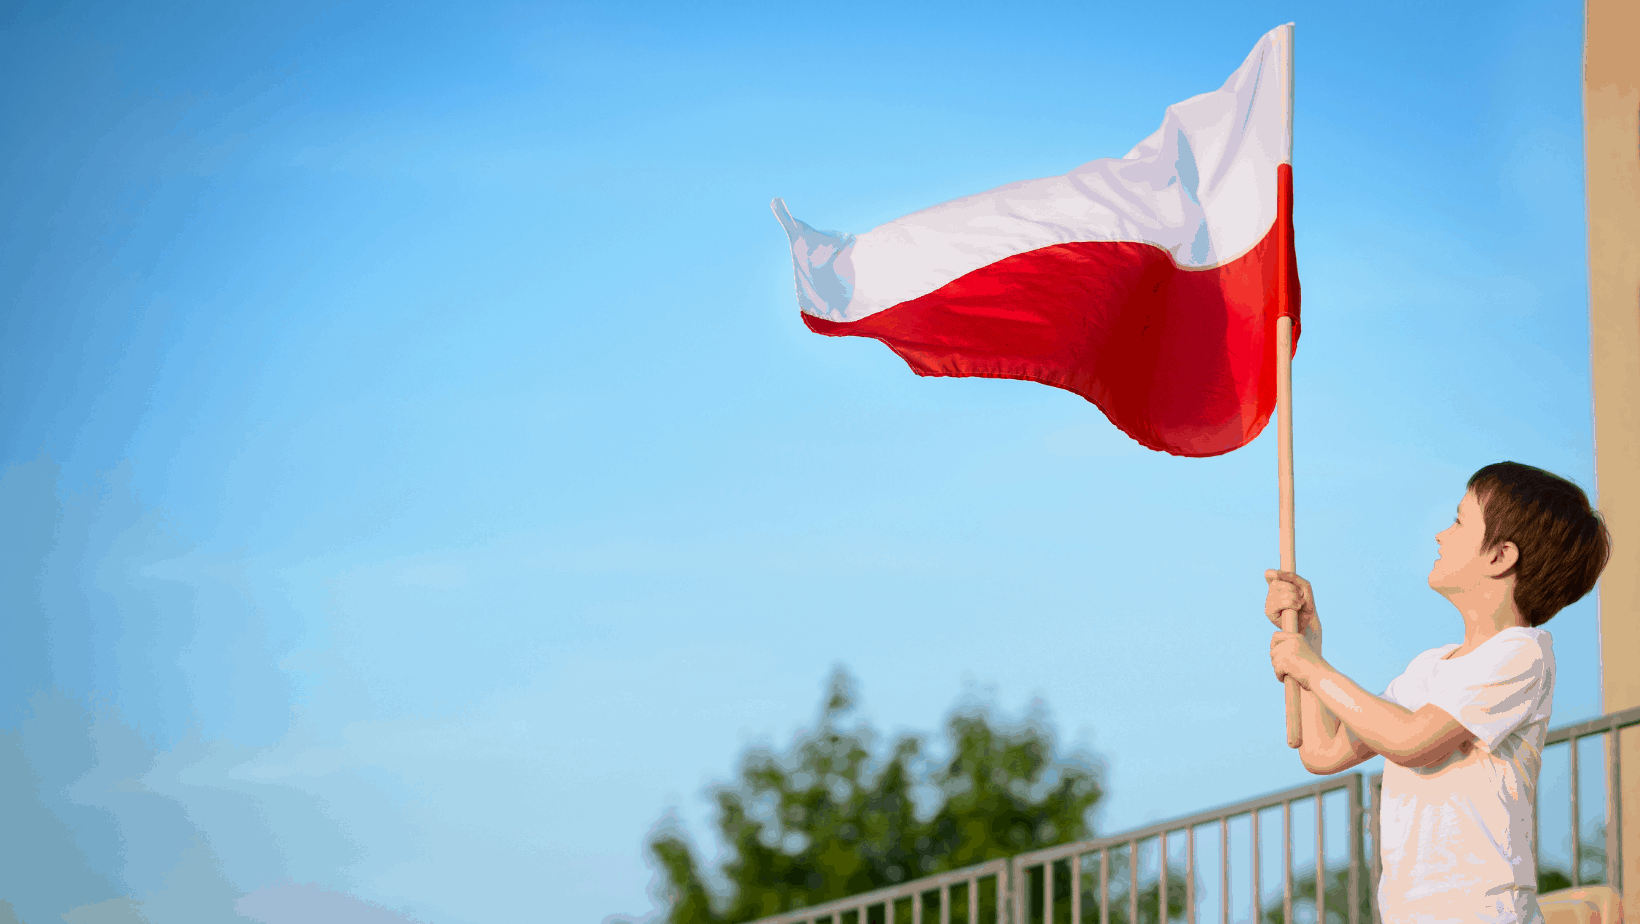 Bank holidays, observances, traditions & celebrations in Poland